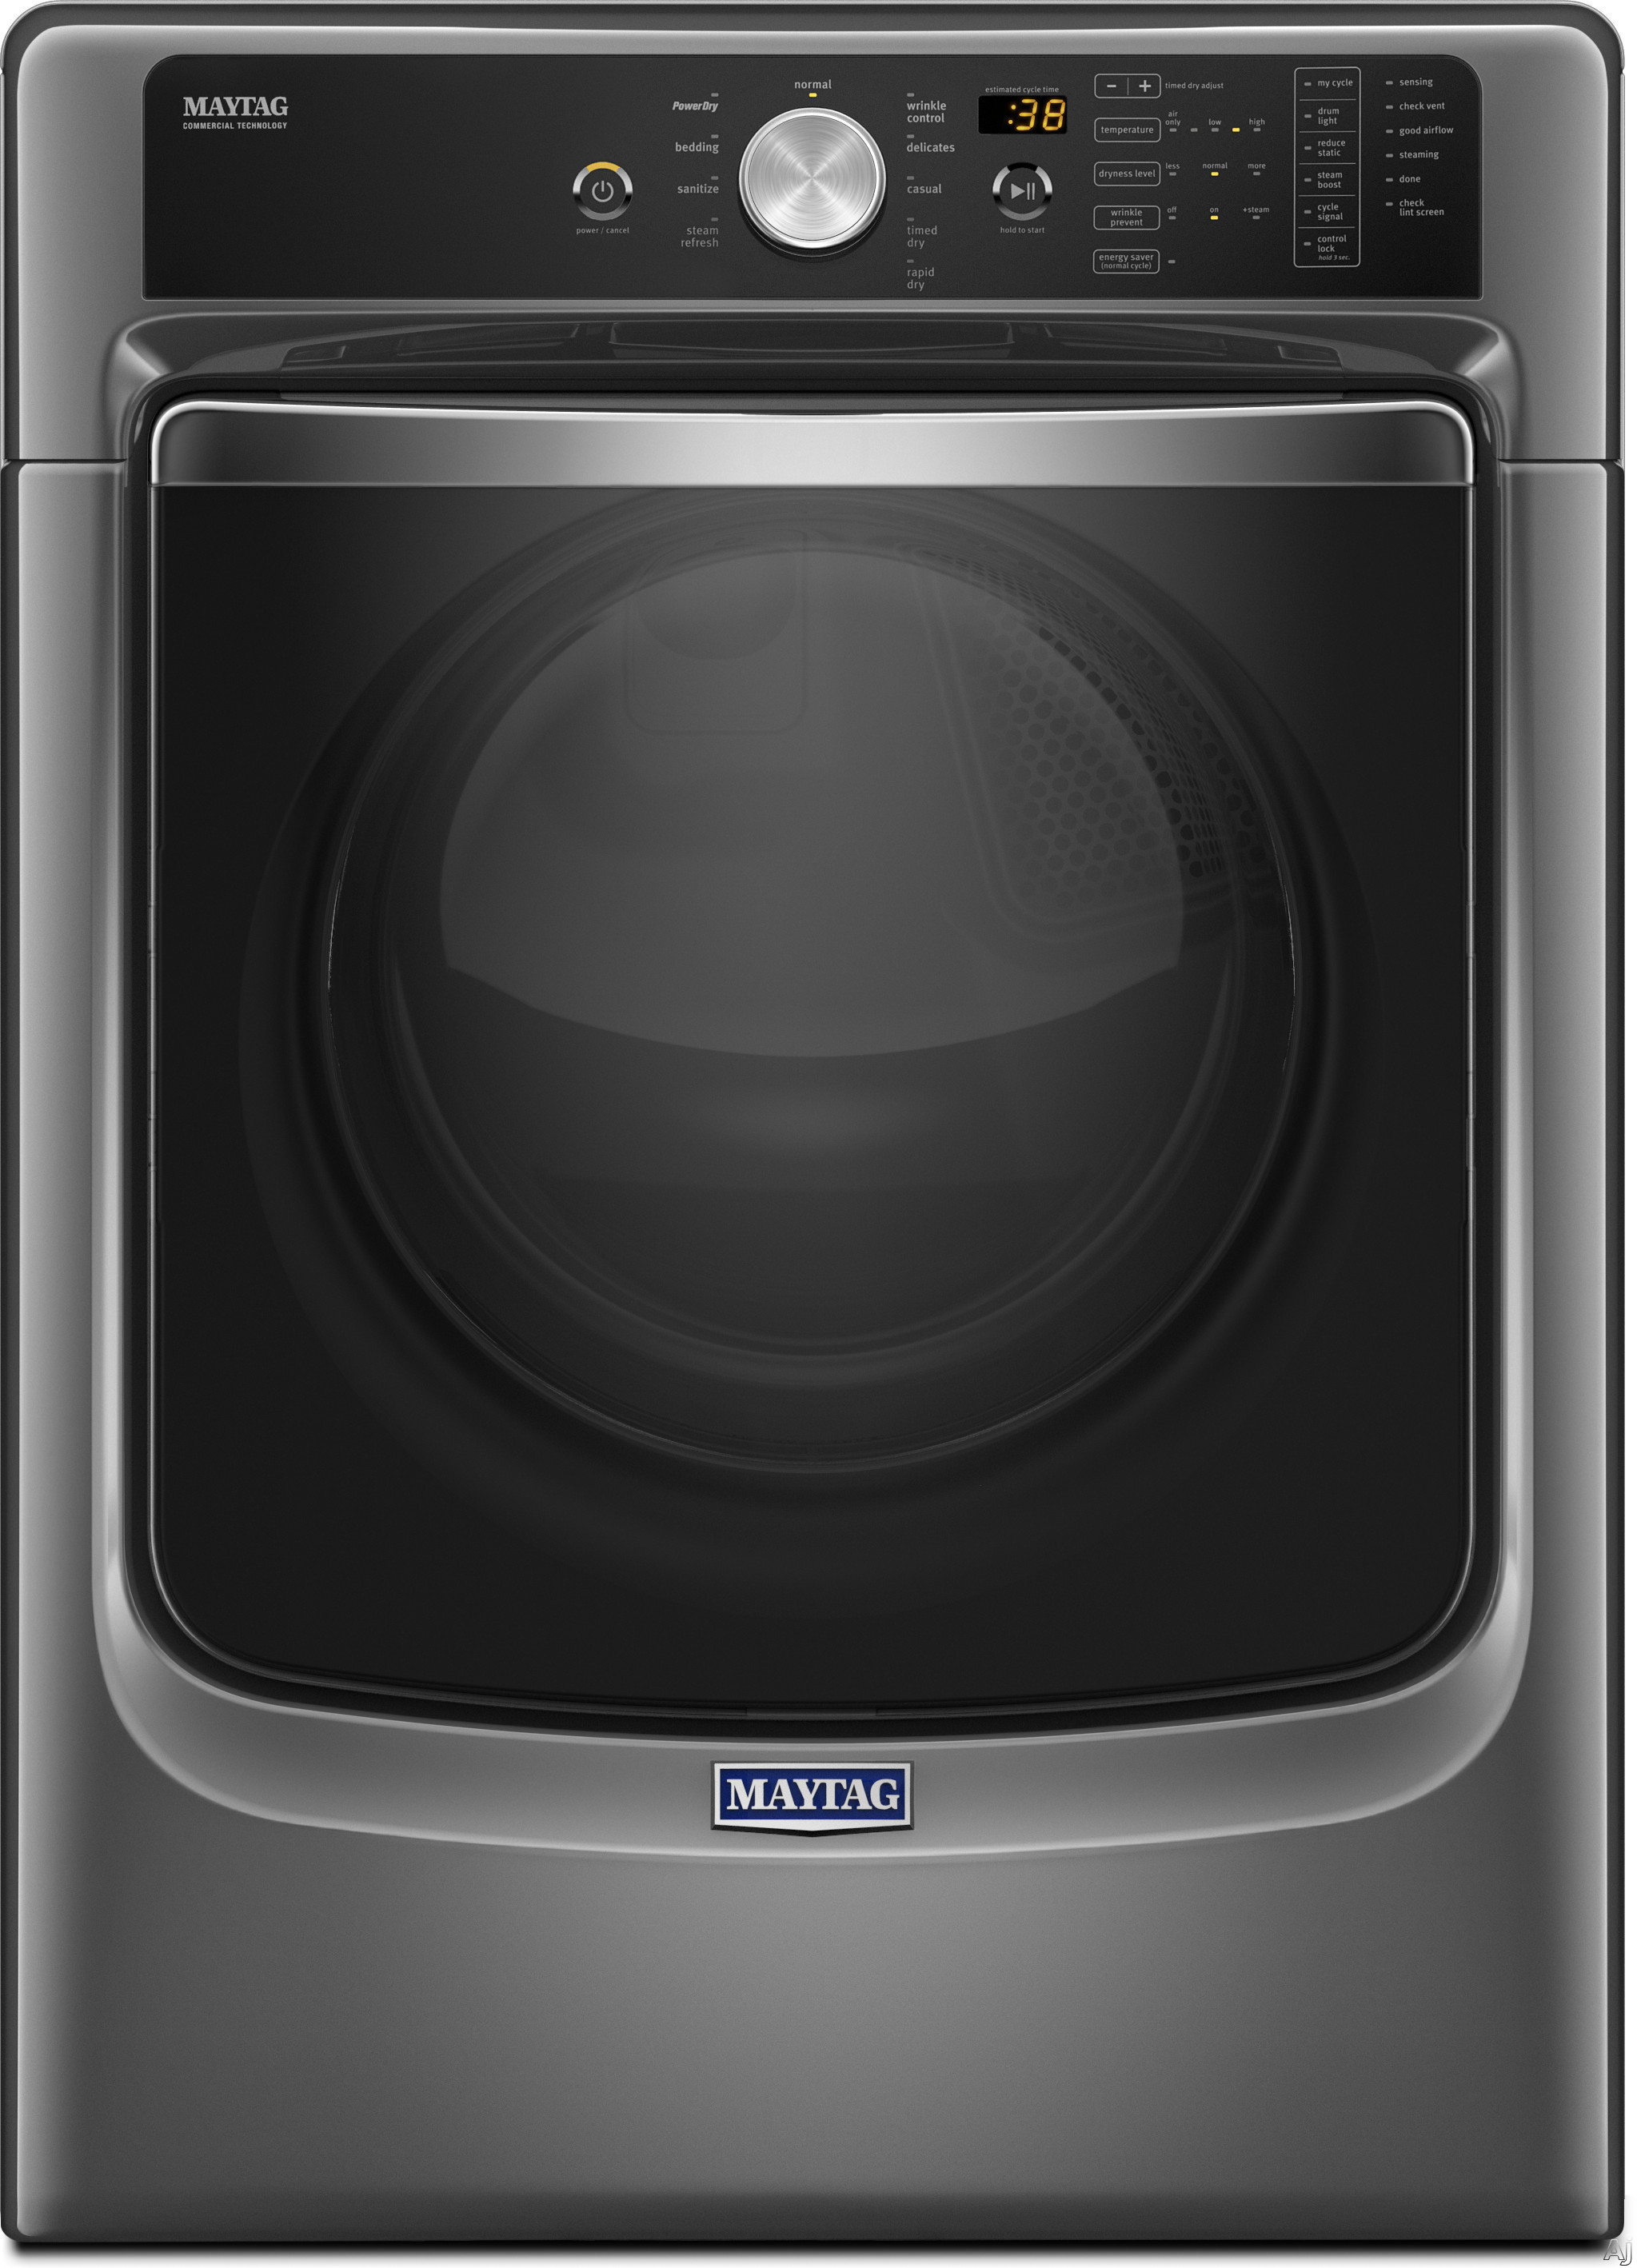 Image of Maytag MGD8200FC 27 Inch 7.4 cu. ft. Gas Dryer with Steam, PowerDry, Wrinkle Prevent, Sanitize Cycle, Rapid Dry Cycle, 7.4 cu. ft. Capacity, 10 Dry Cycles, 5 Temperature Selections, ADA Compliant and Energy Star Rated: Metallic Slate